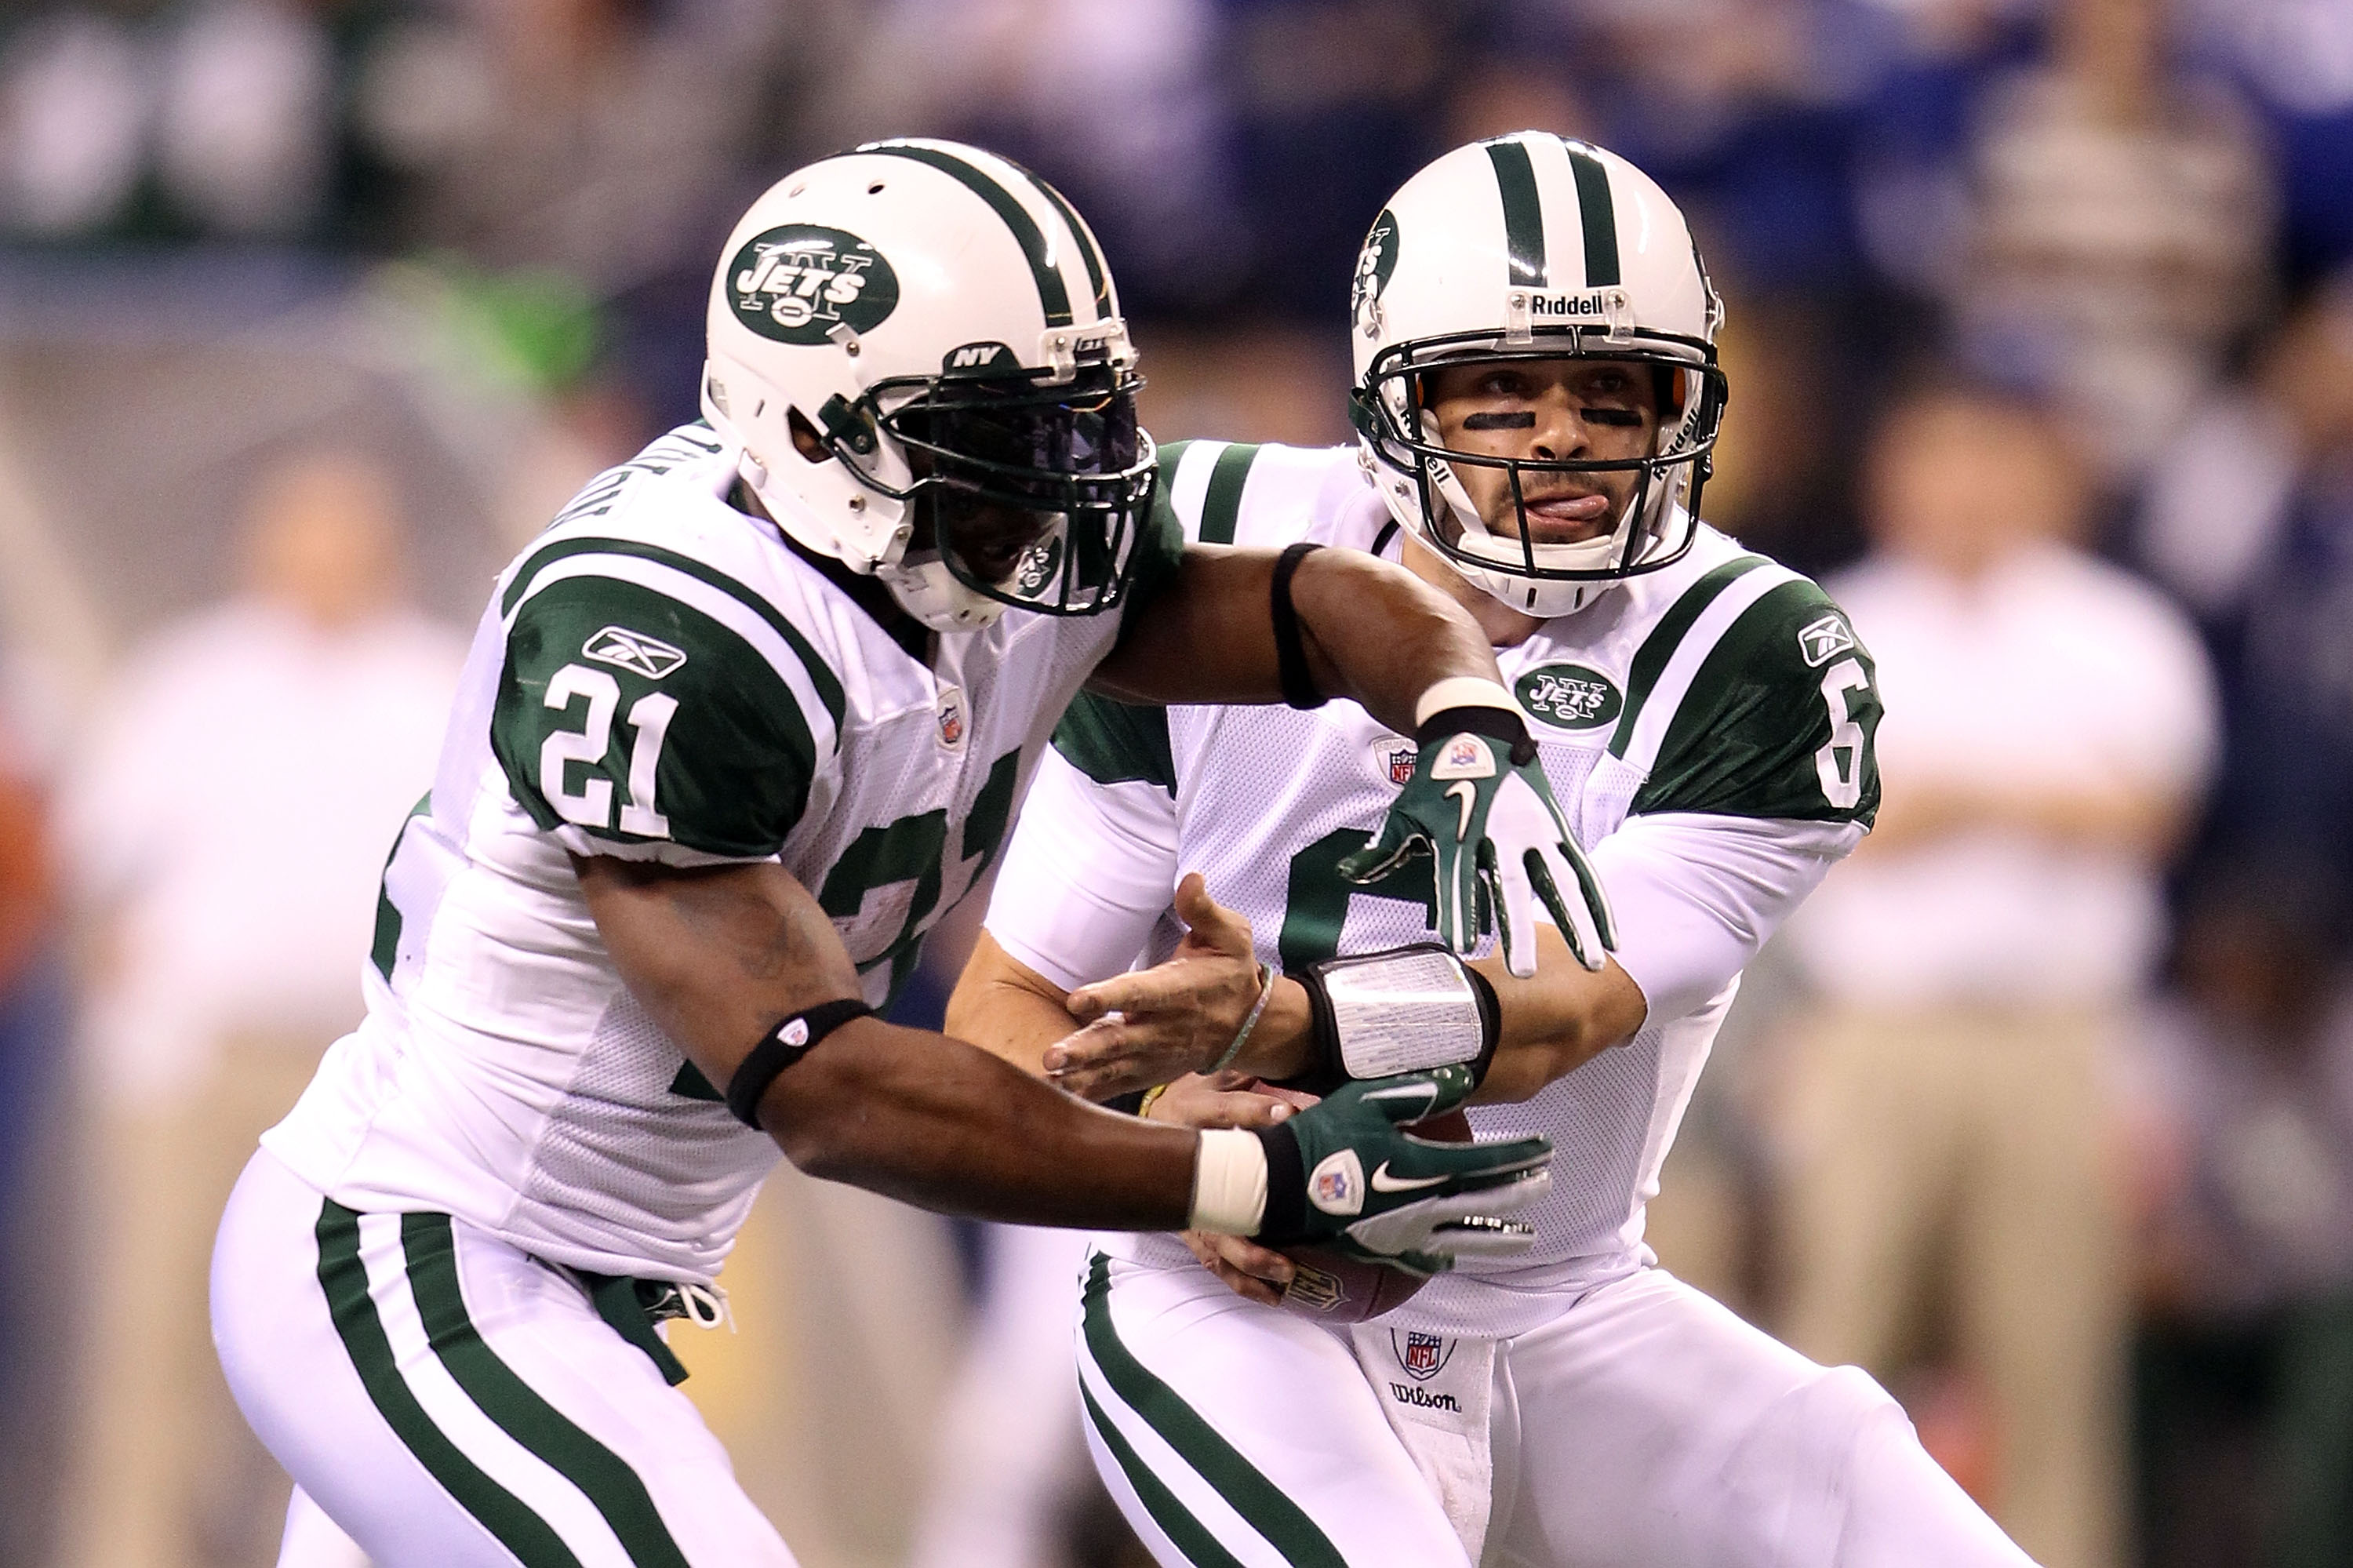 INDIANAPOLIS, IN - JANUARY 08:  Quarterback Mark Sanchez #6 of the New York Jets fakes a play action handoff to LaDainian Tomlinson #21 against the Indianapolis Colts during their 2011 AFC wild card playoff game at Lucas Oil Stadium on January 8, 2011 in